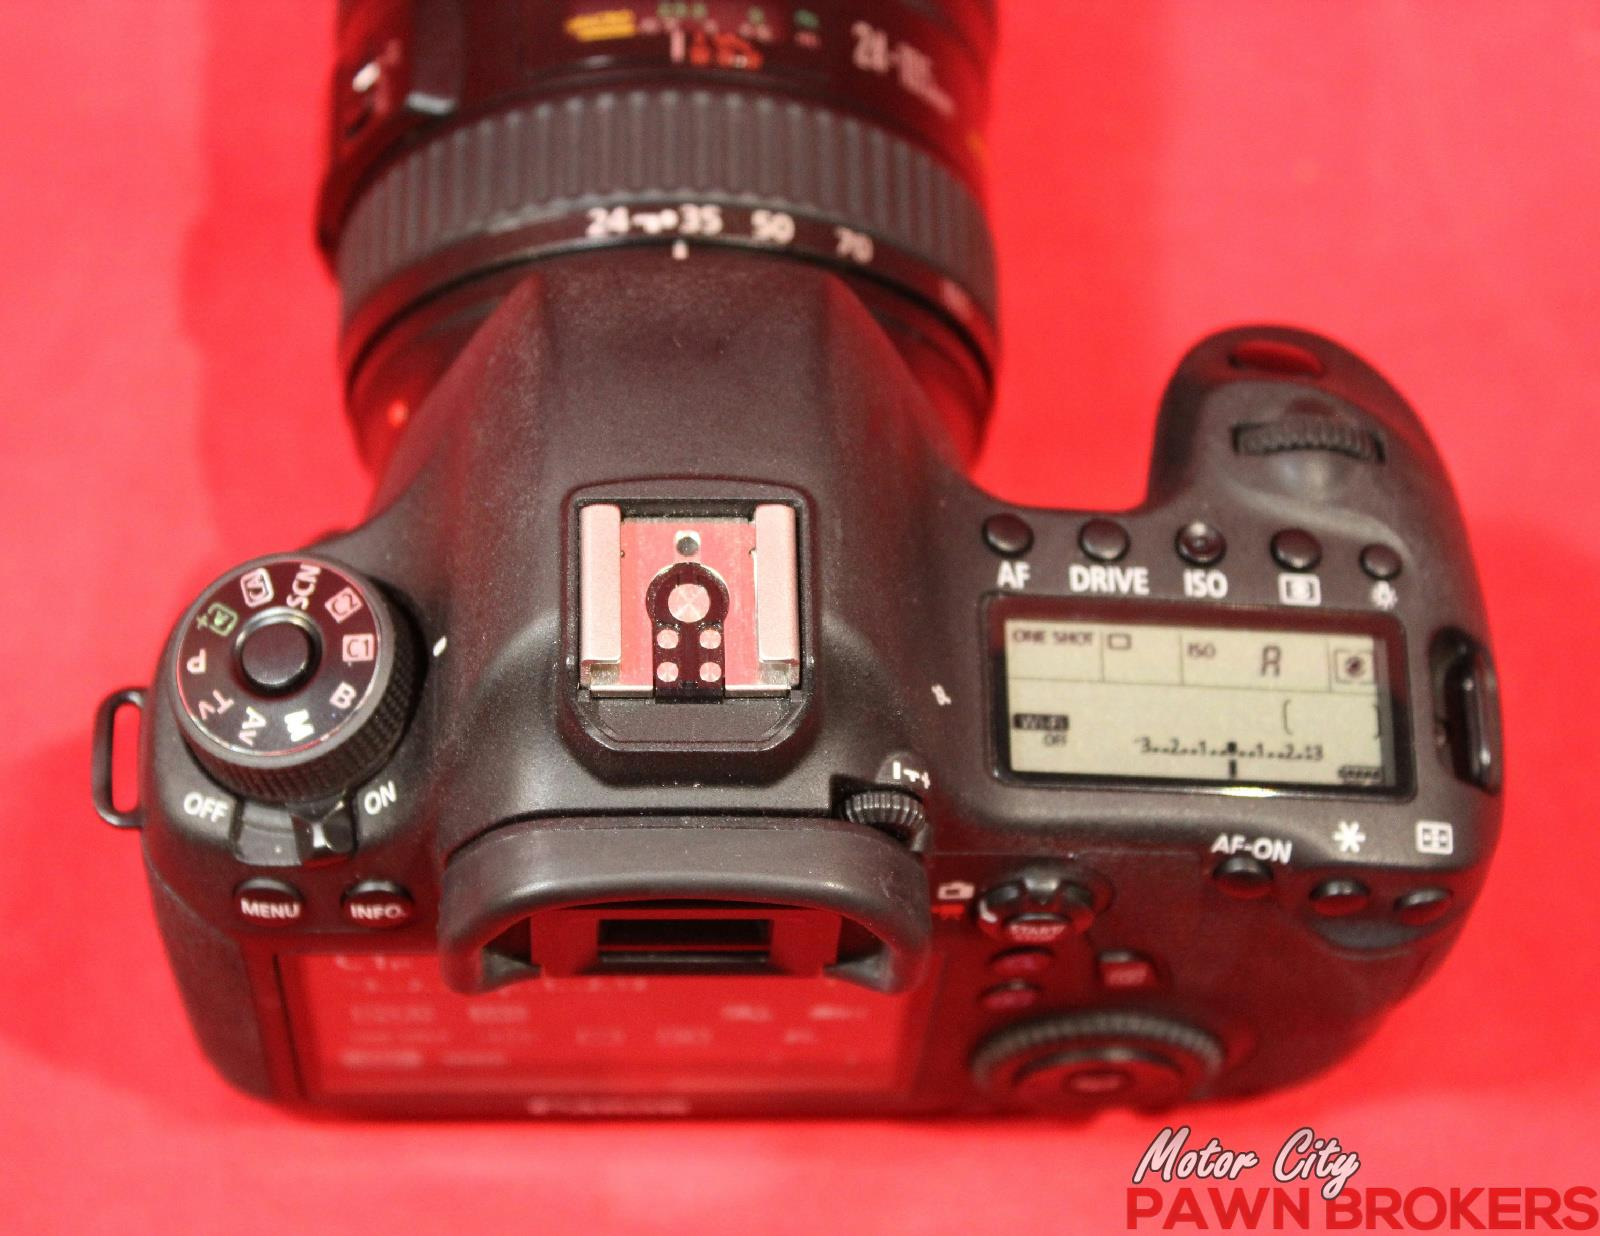 Canon Ds126401 Eos 6d 20mp 3 Display Wi Fi Dslr